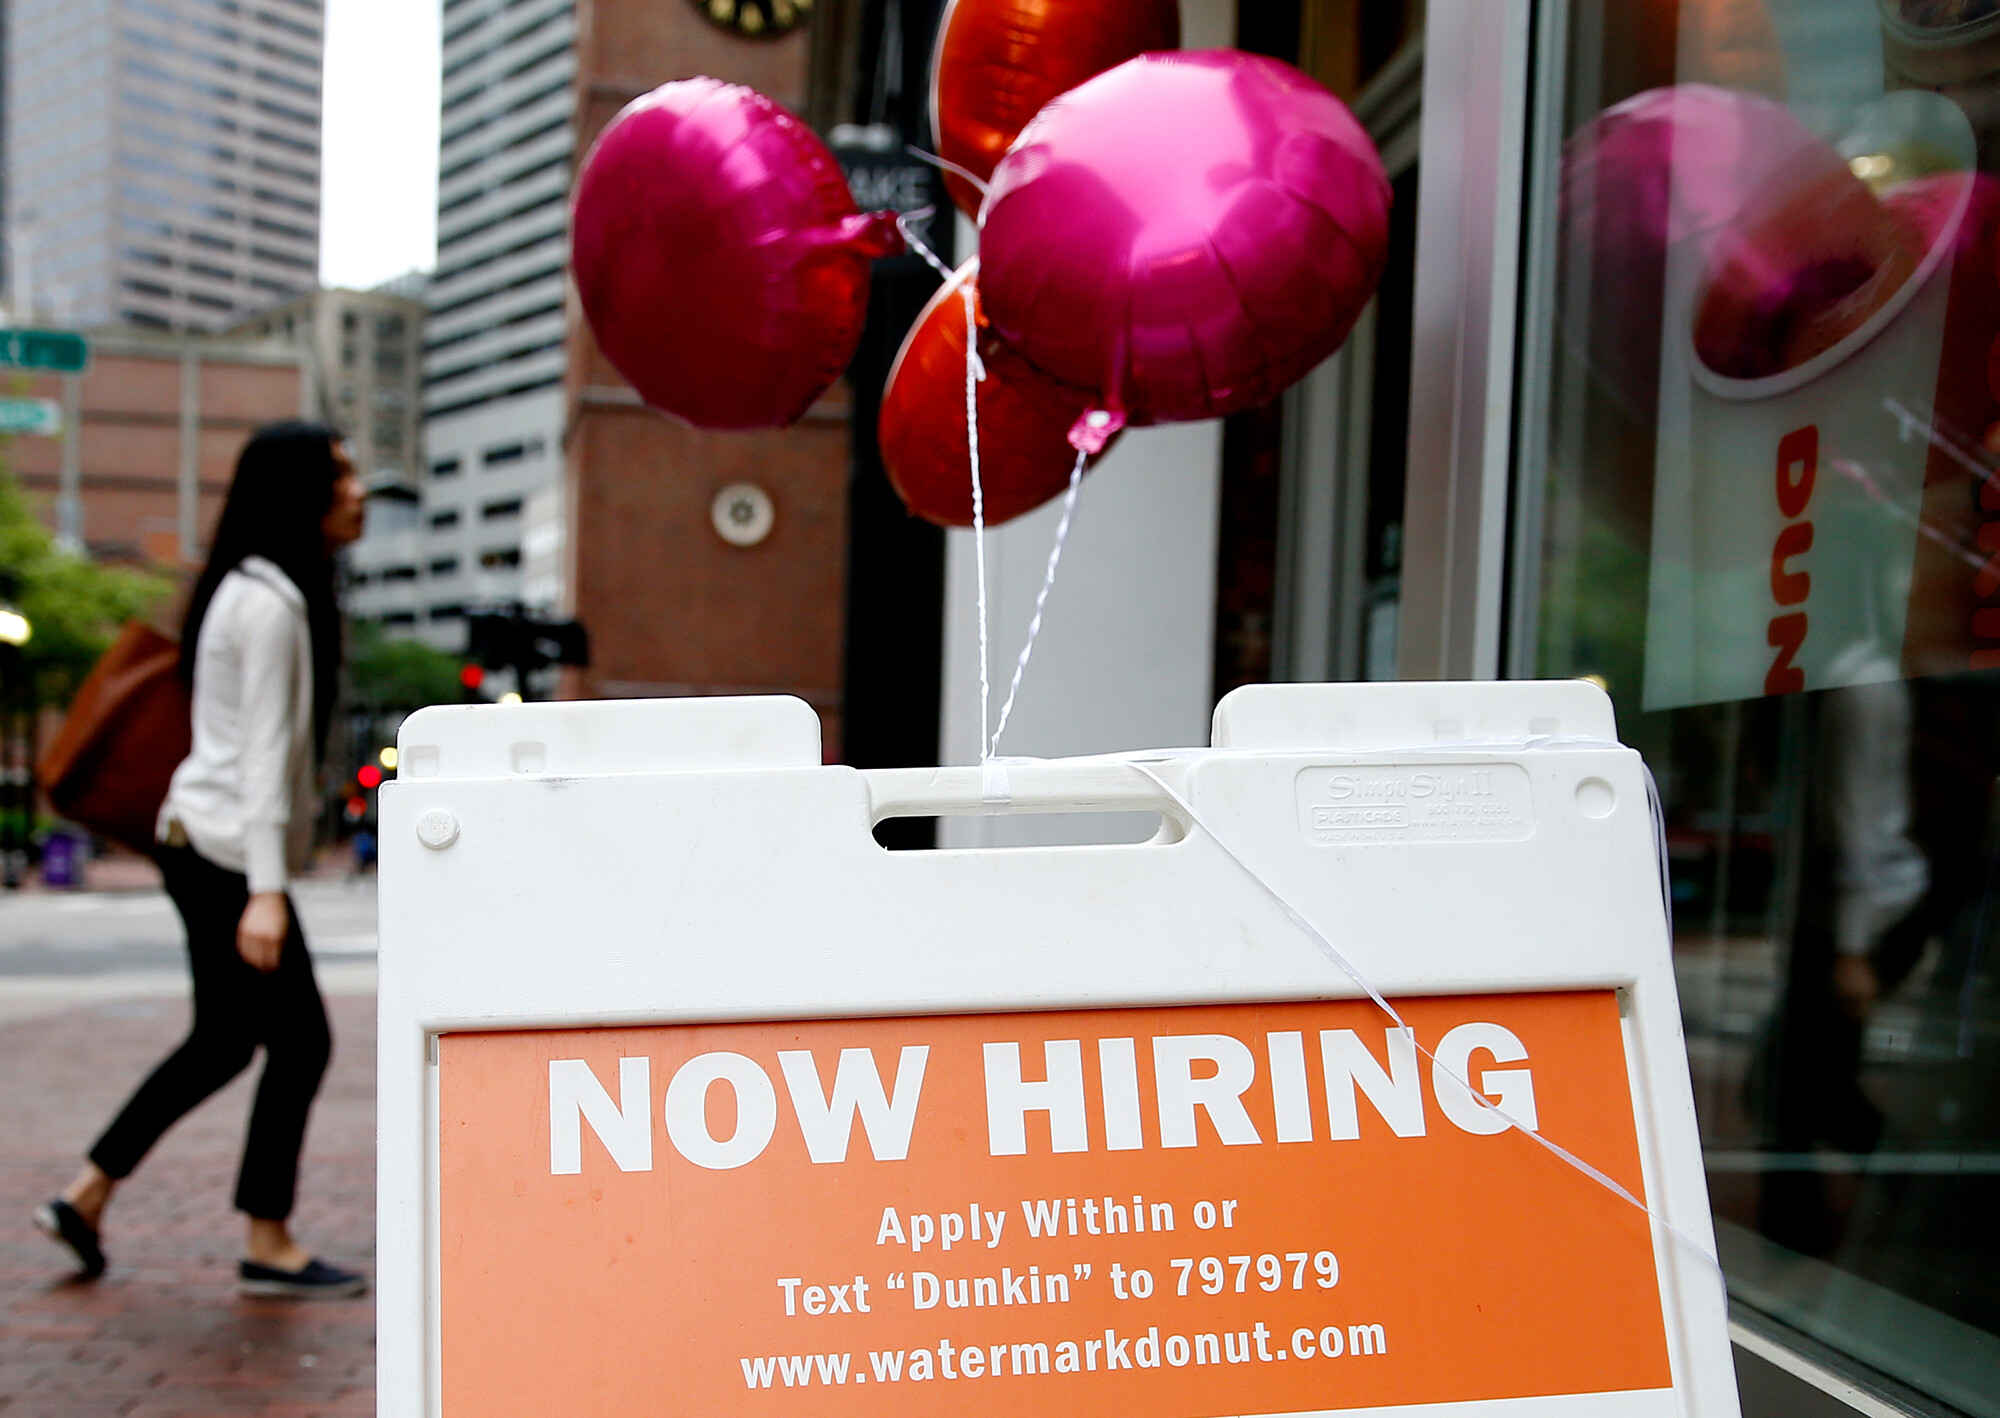 US employers added 943,000 jobs in July, signaling a strong labor market